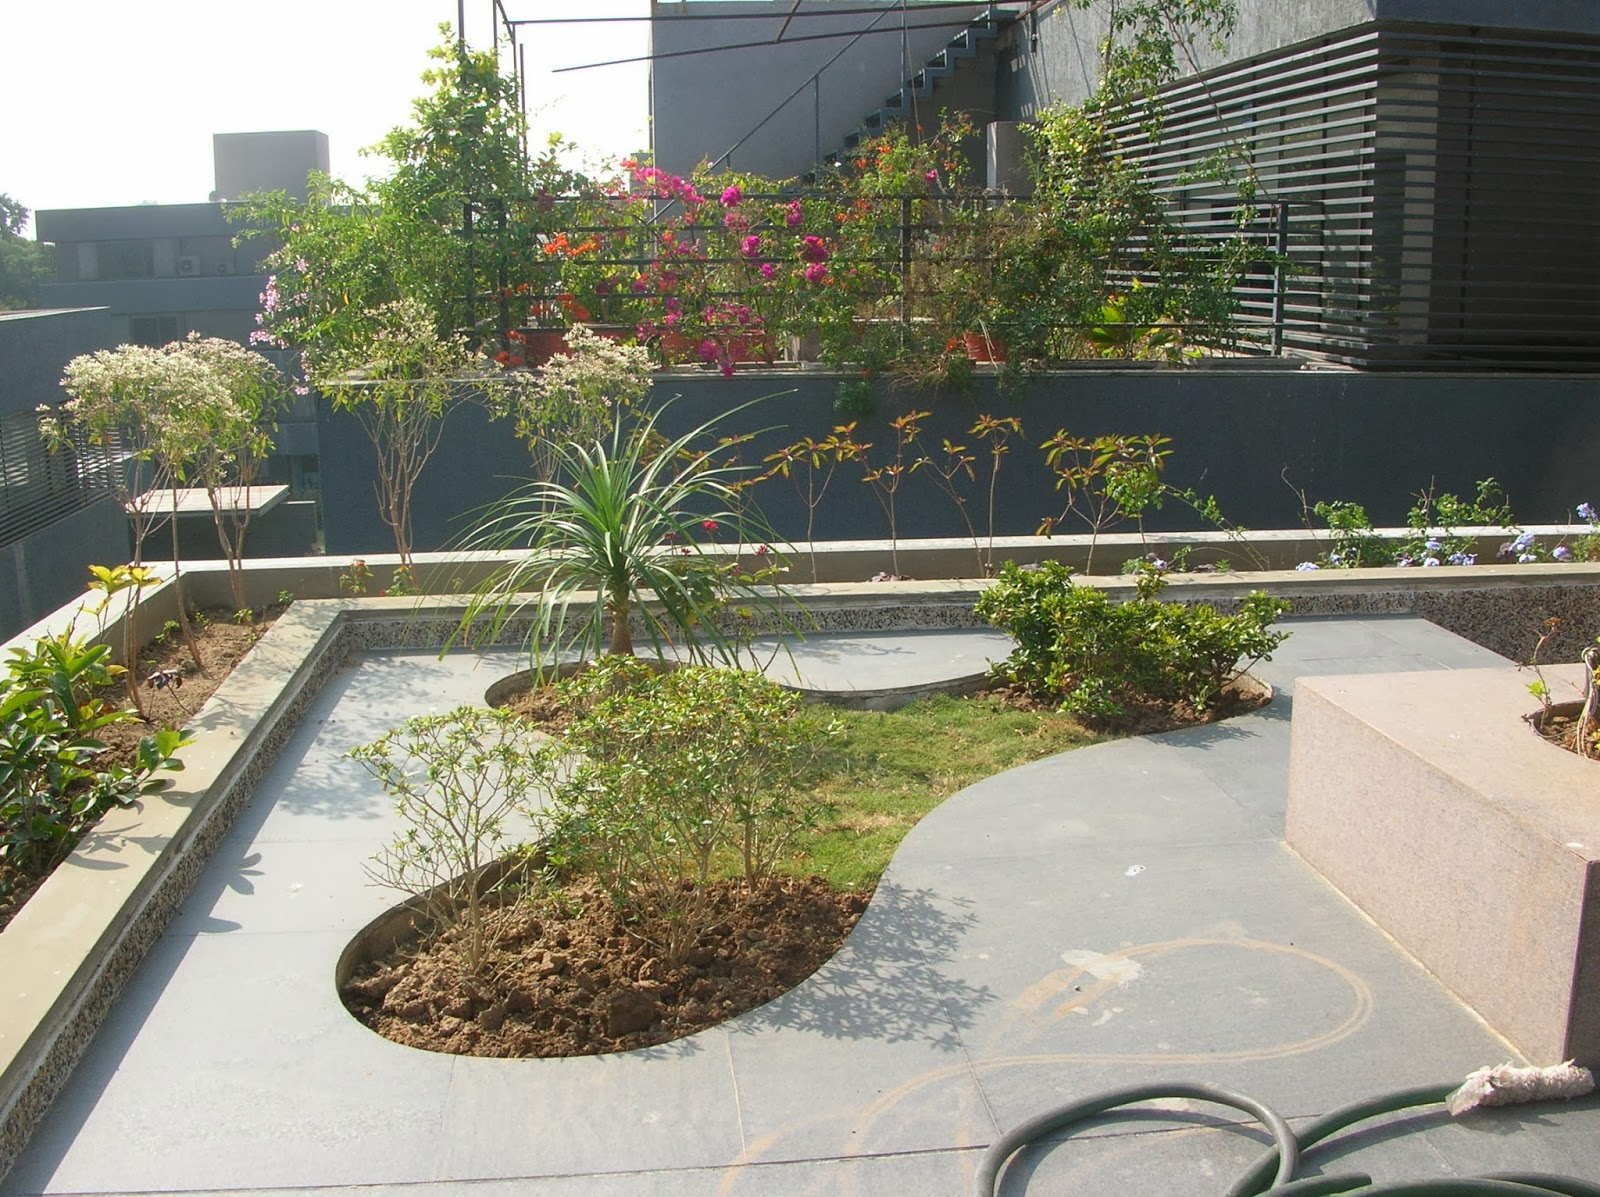 Bonsai trees and plants in ahmedabad for sale garden for Terrace garden design